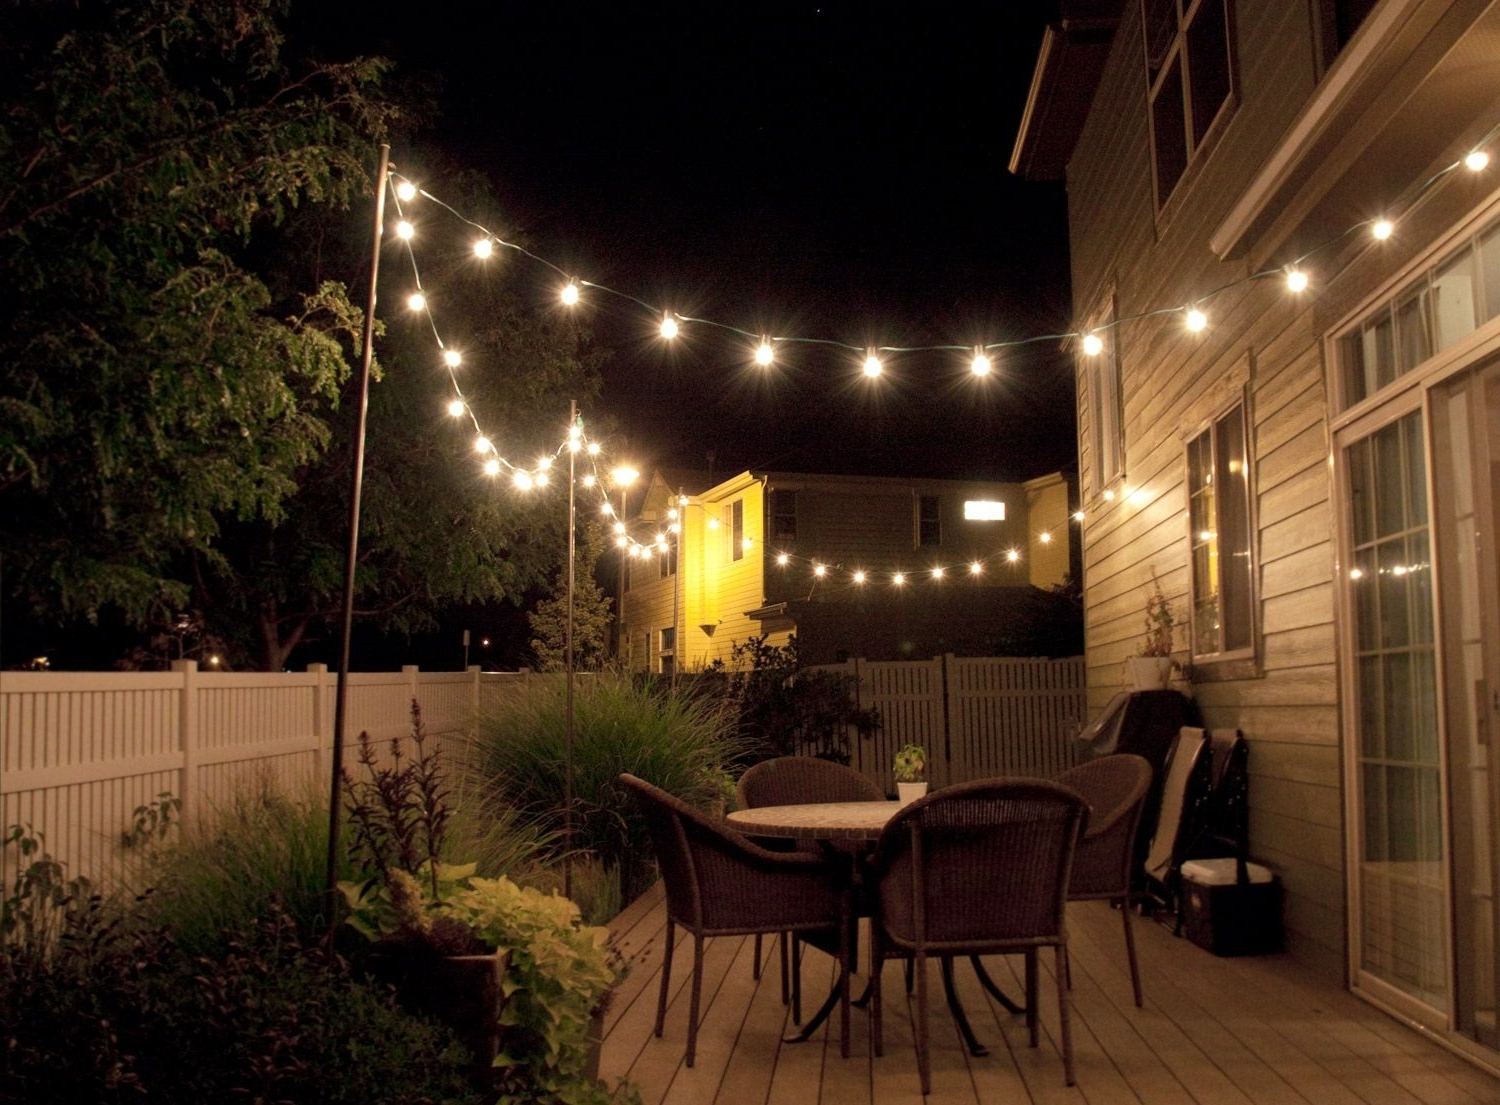 How To Make Inexpensive Poles To Hang String Lights On – Café Style Within Most Up To Date Outdoor String And Patio Lights (View 2 of 20)